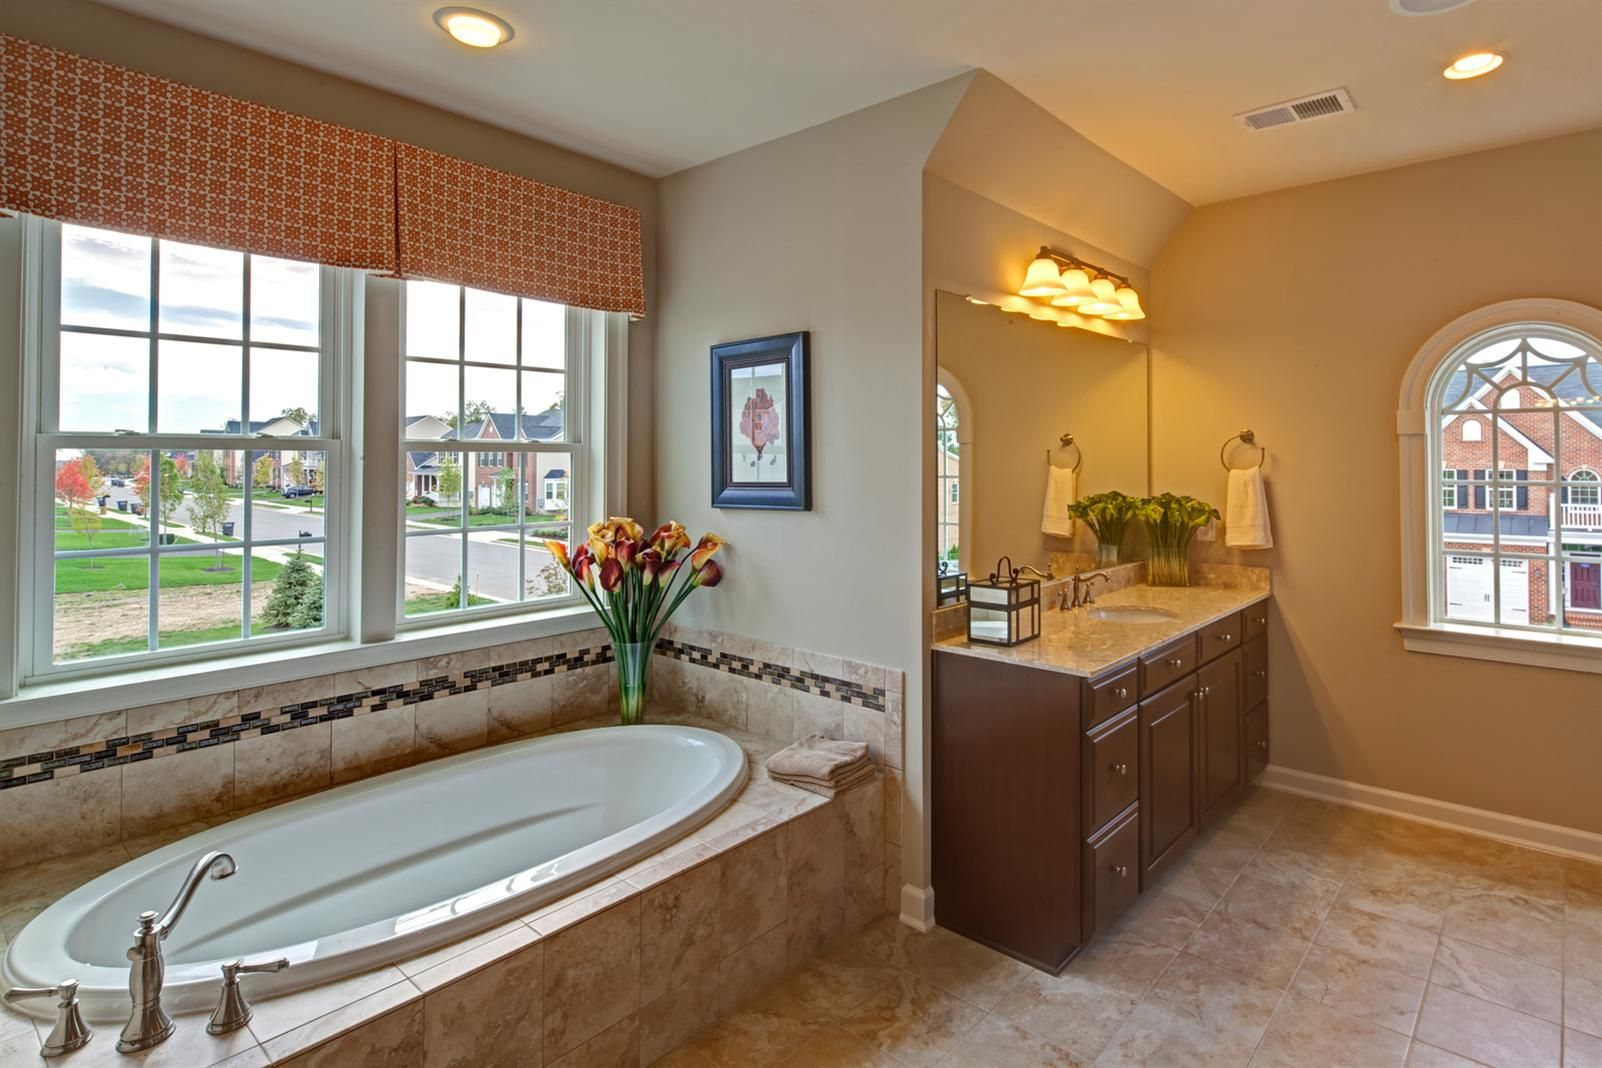 Find New Aer Single Family Homes In Malvern Pa Nvhomes Is The